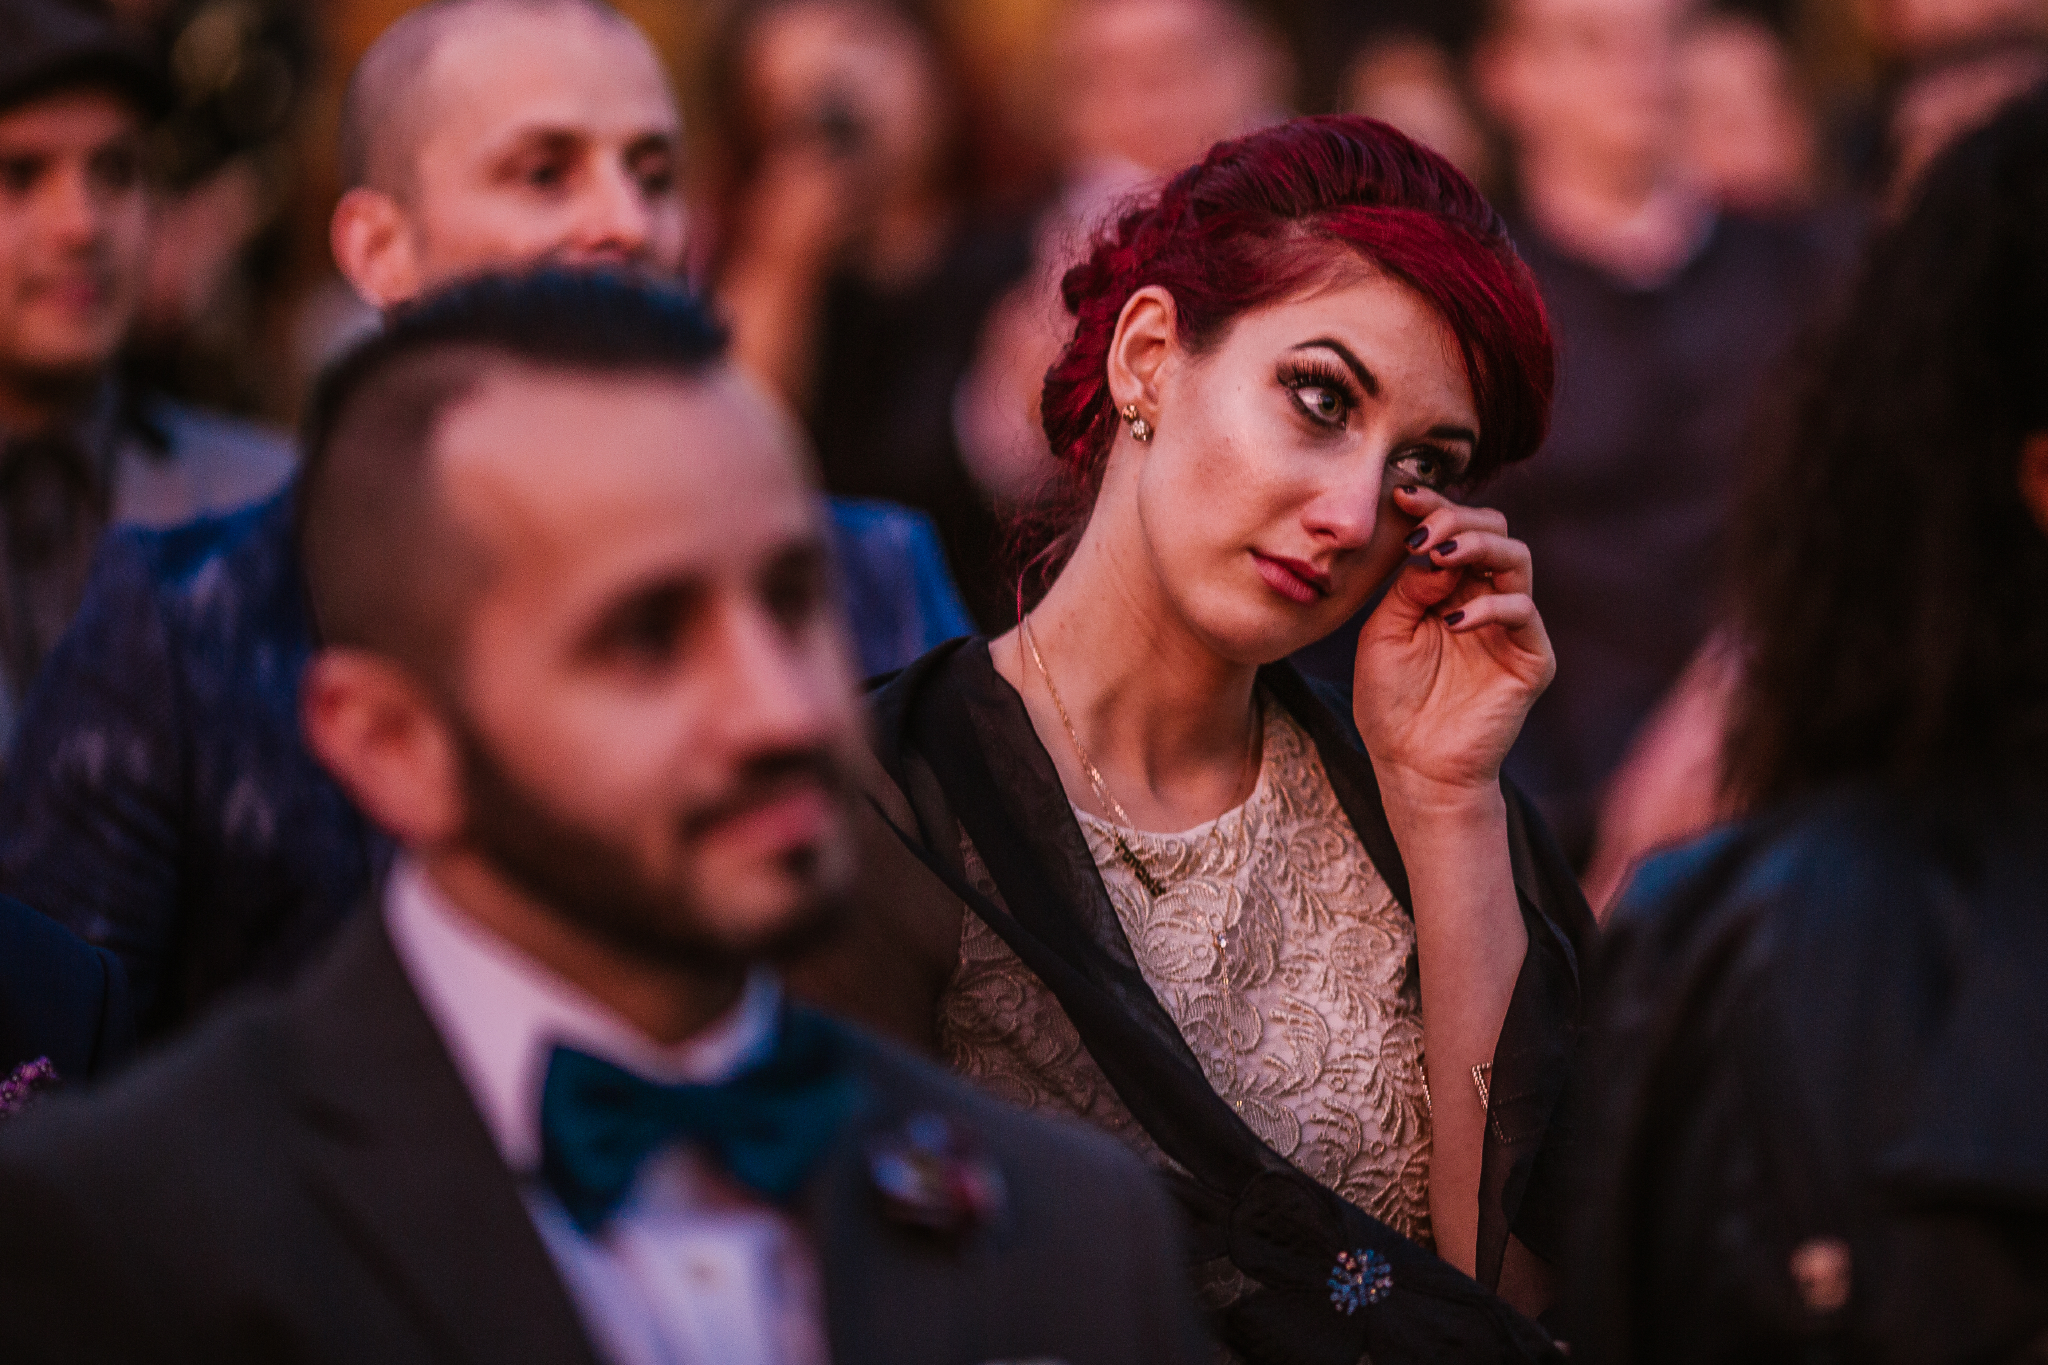 san diego wedding   photographer   woman with red hair in crowd tearing up